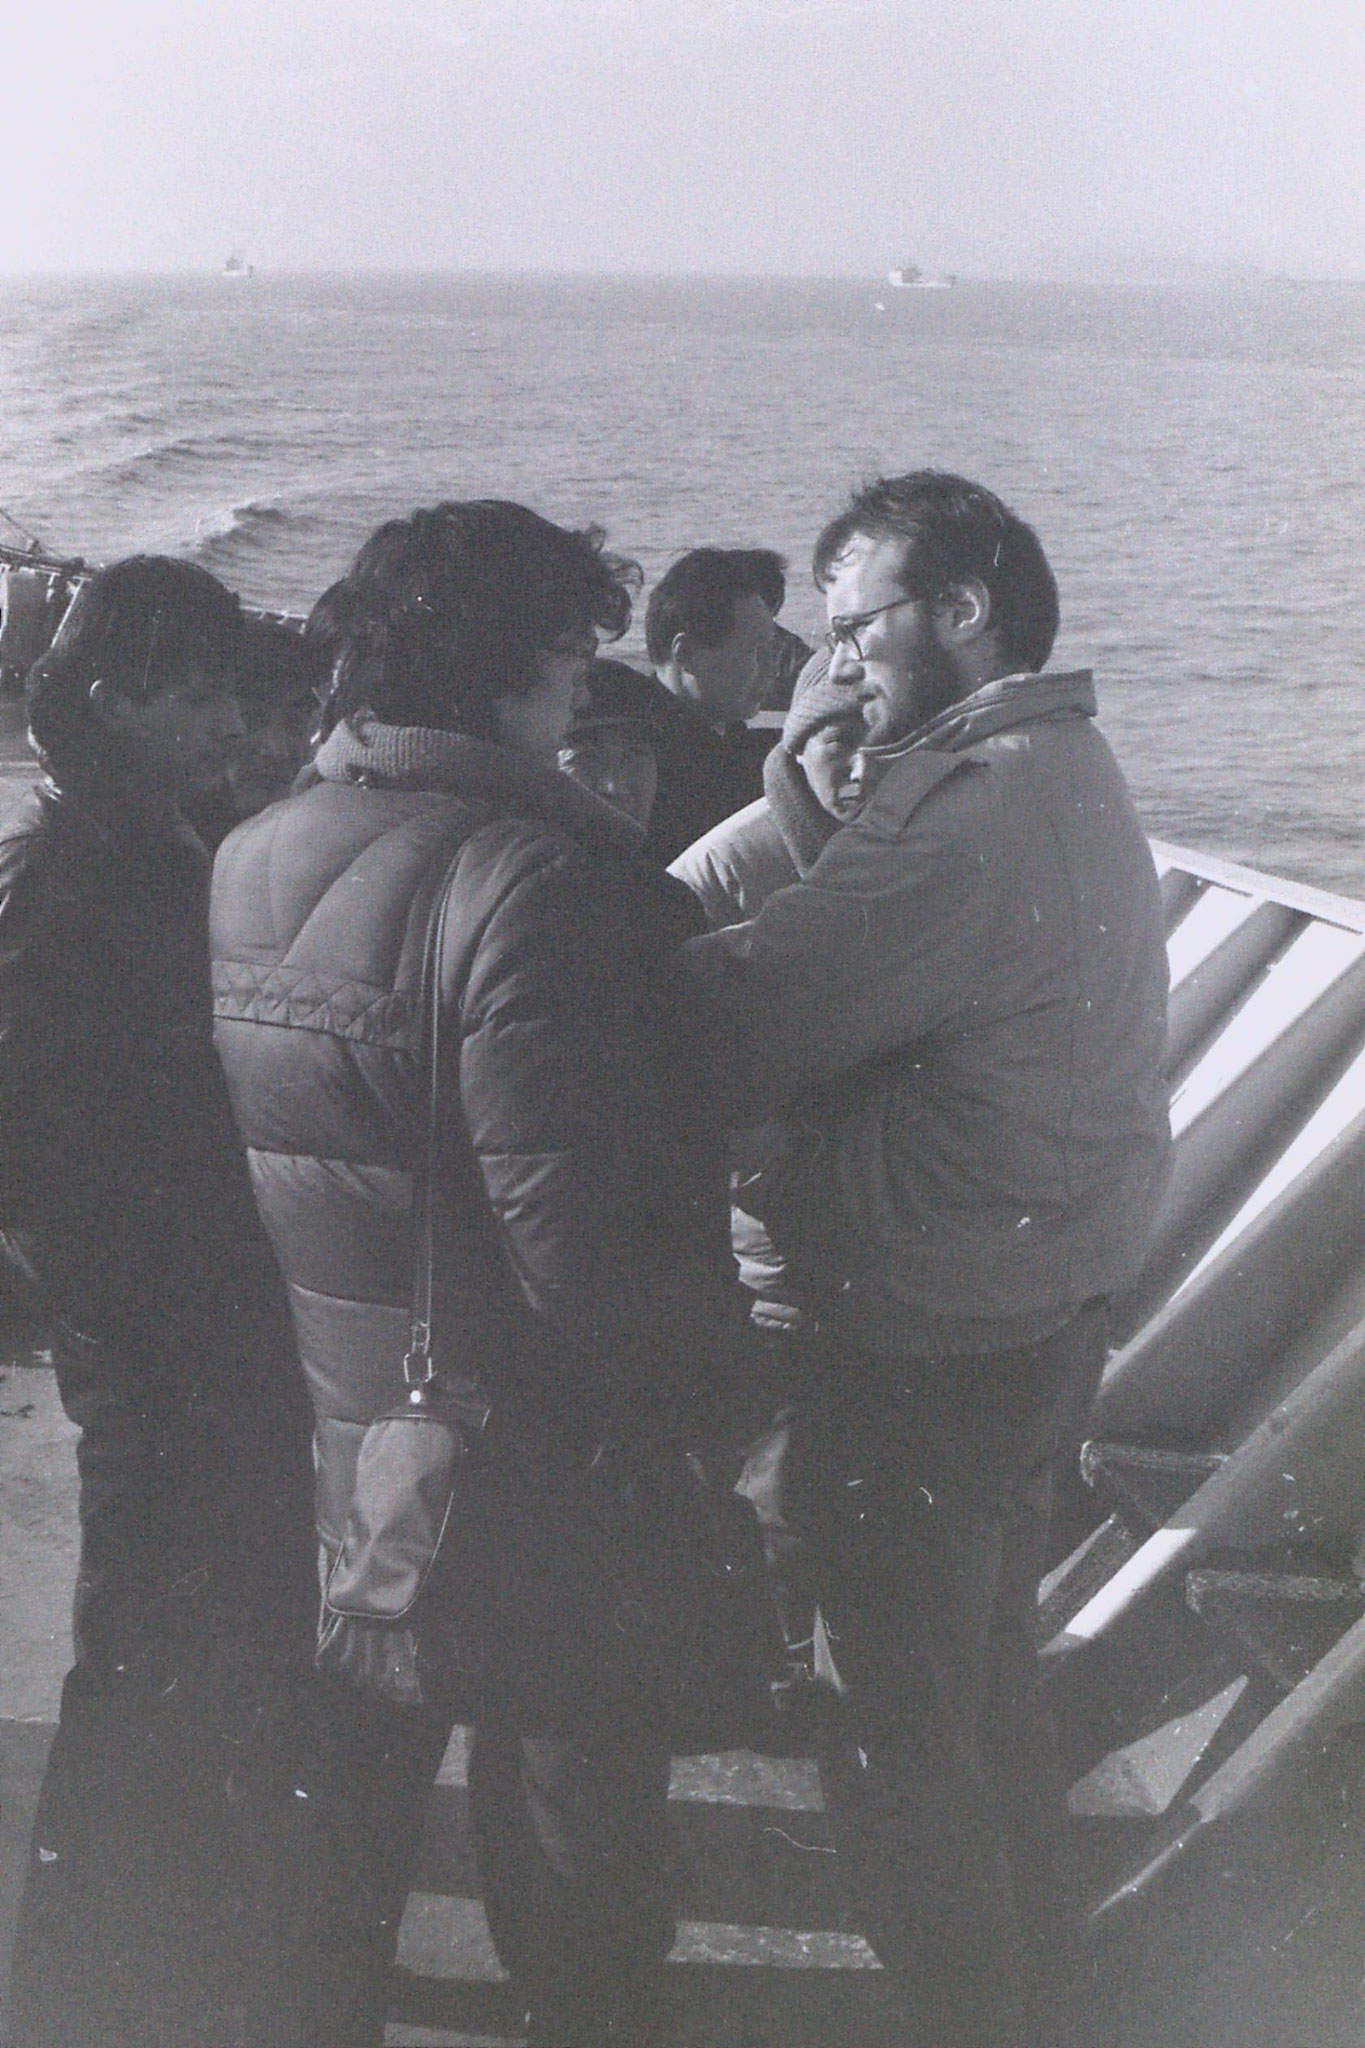 12/2/1989: 11: pictures on boat from Shanghai to Qingdao